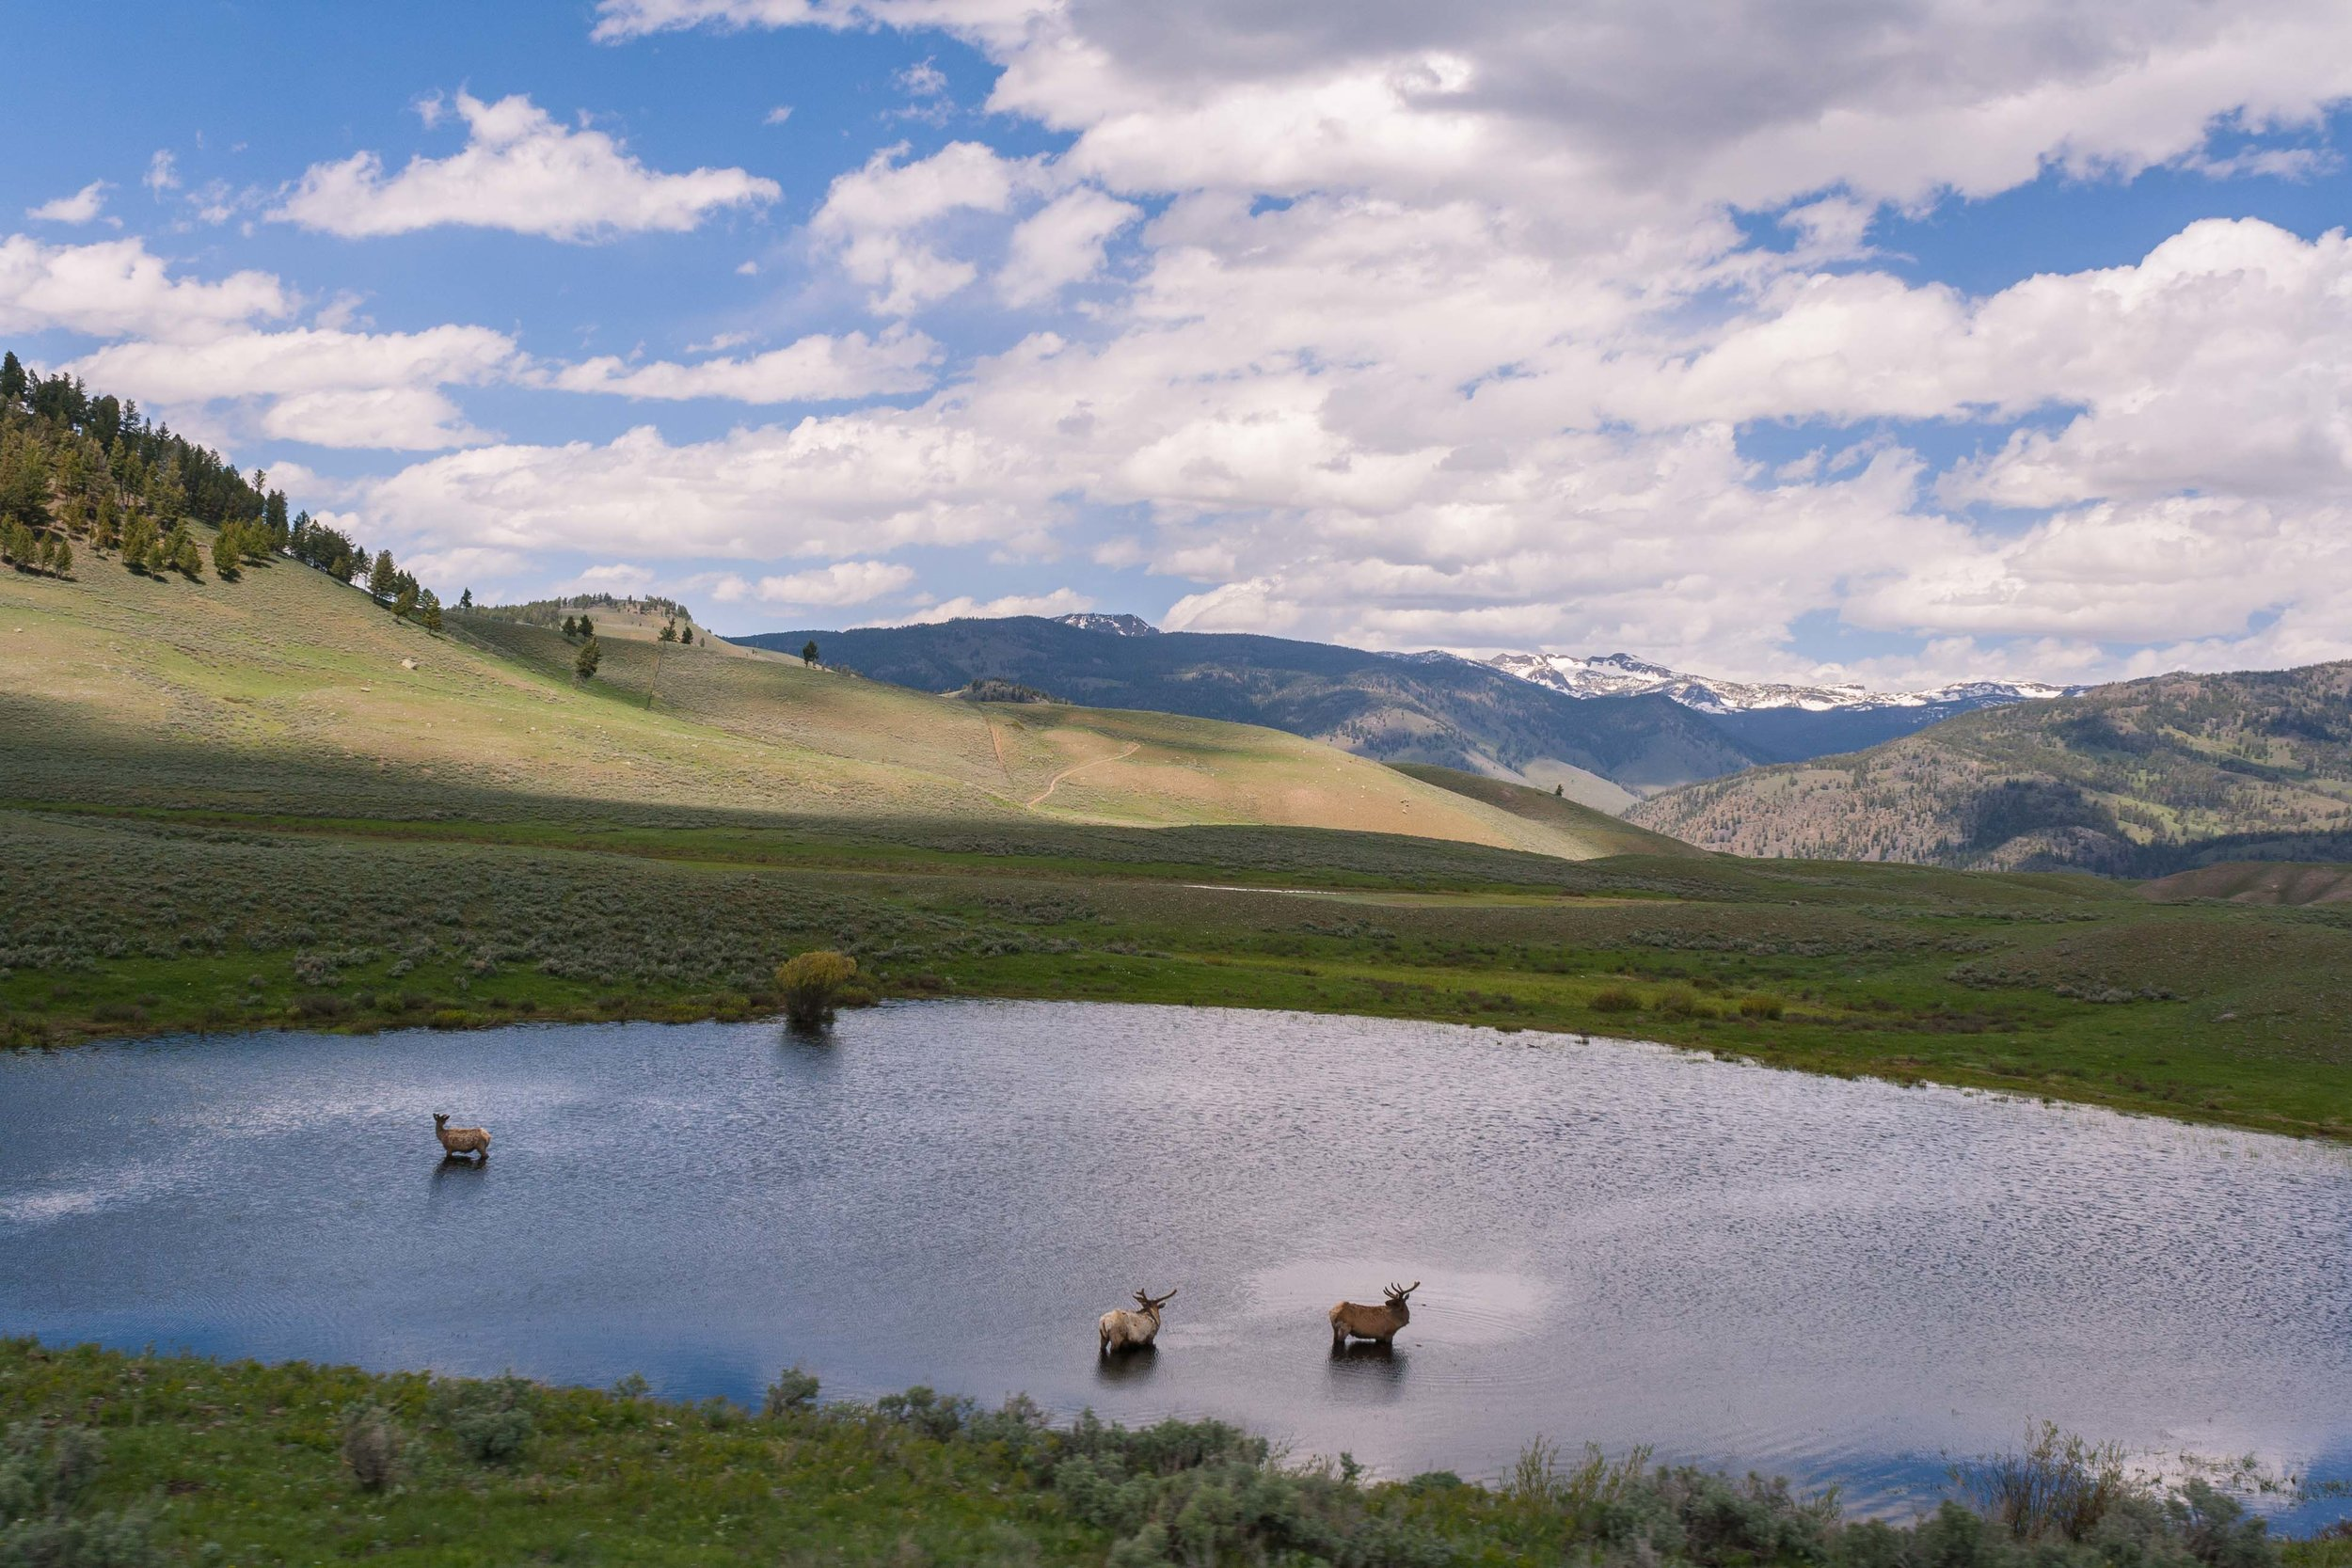 Yellowstone National Park, May 2014